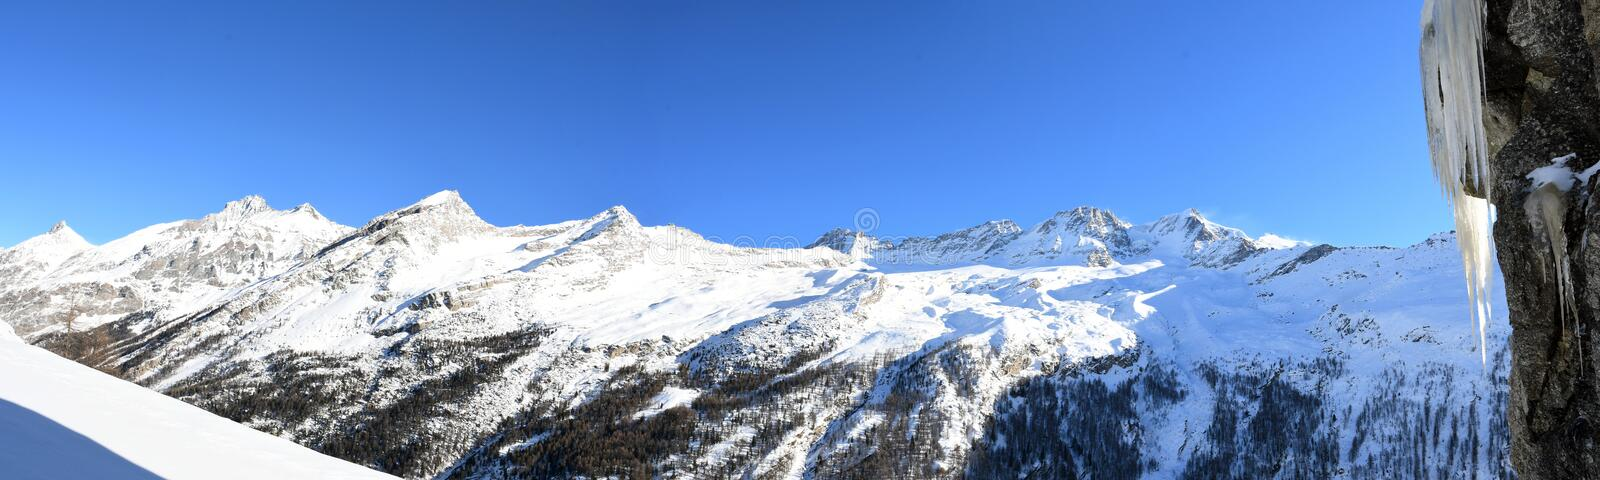 Gran Paradiso. Overview of the peaks of the Gran Paradiso, seen from the Valsavaranche stock photography